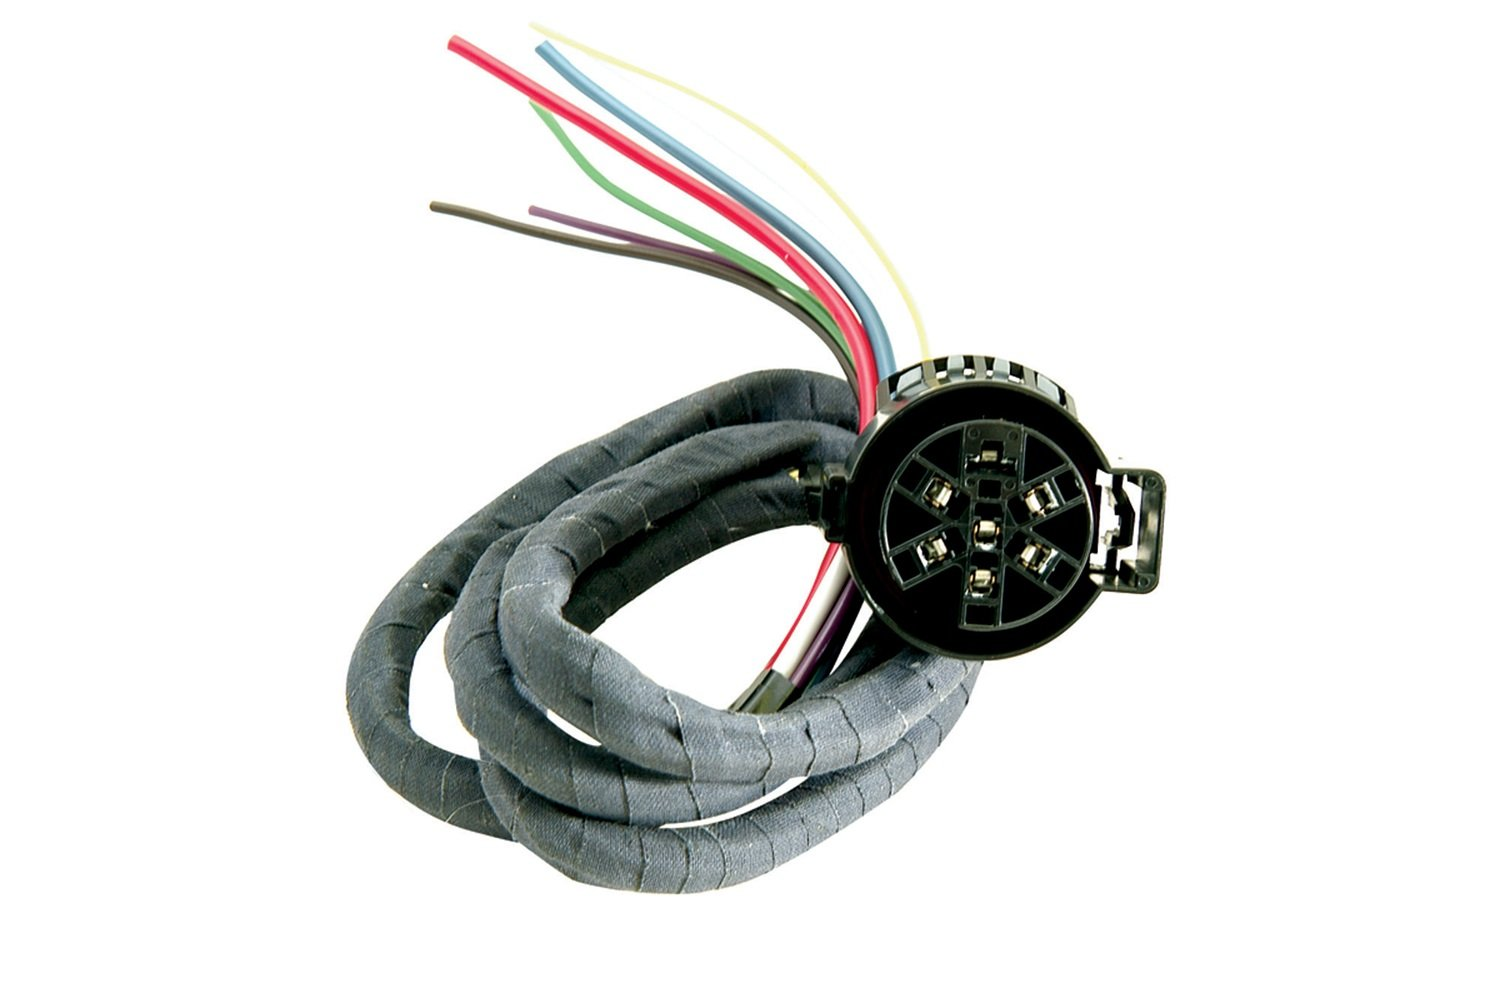 619JgDjQ1WL._SL1500_ amazon com hopkins 40985 universal multi tow harness connector universal wiring harness connector at cita.asia